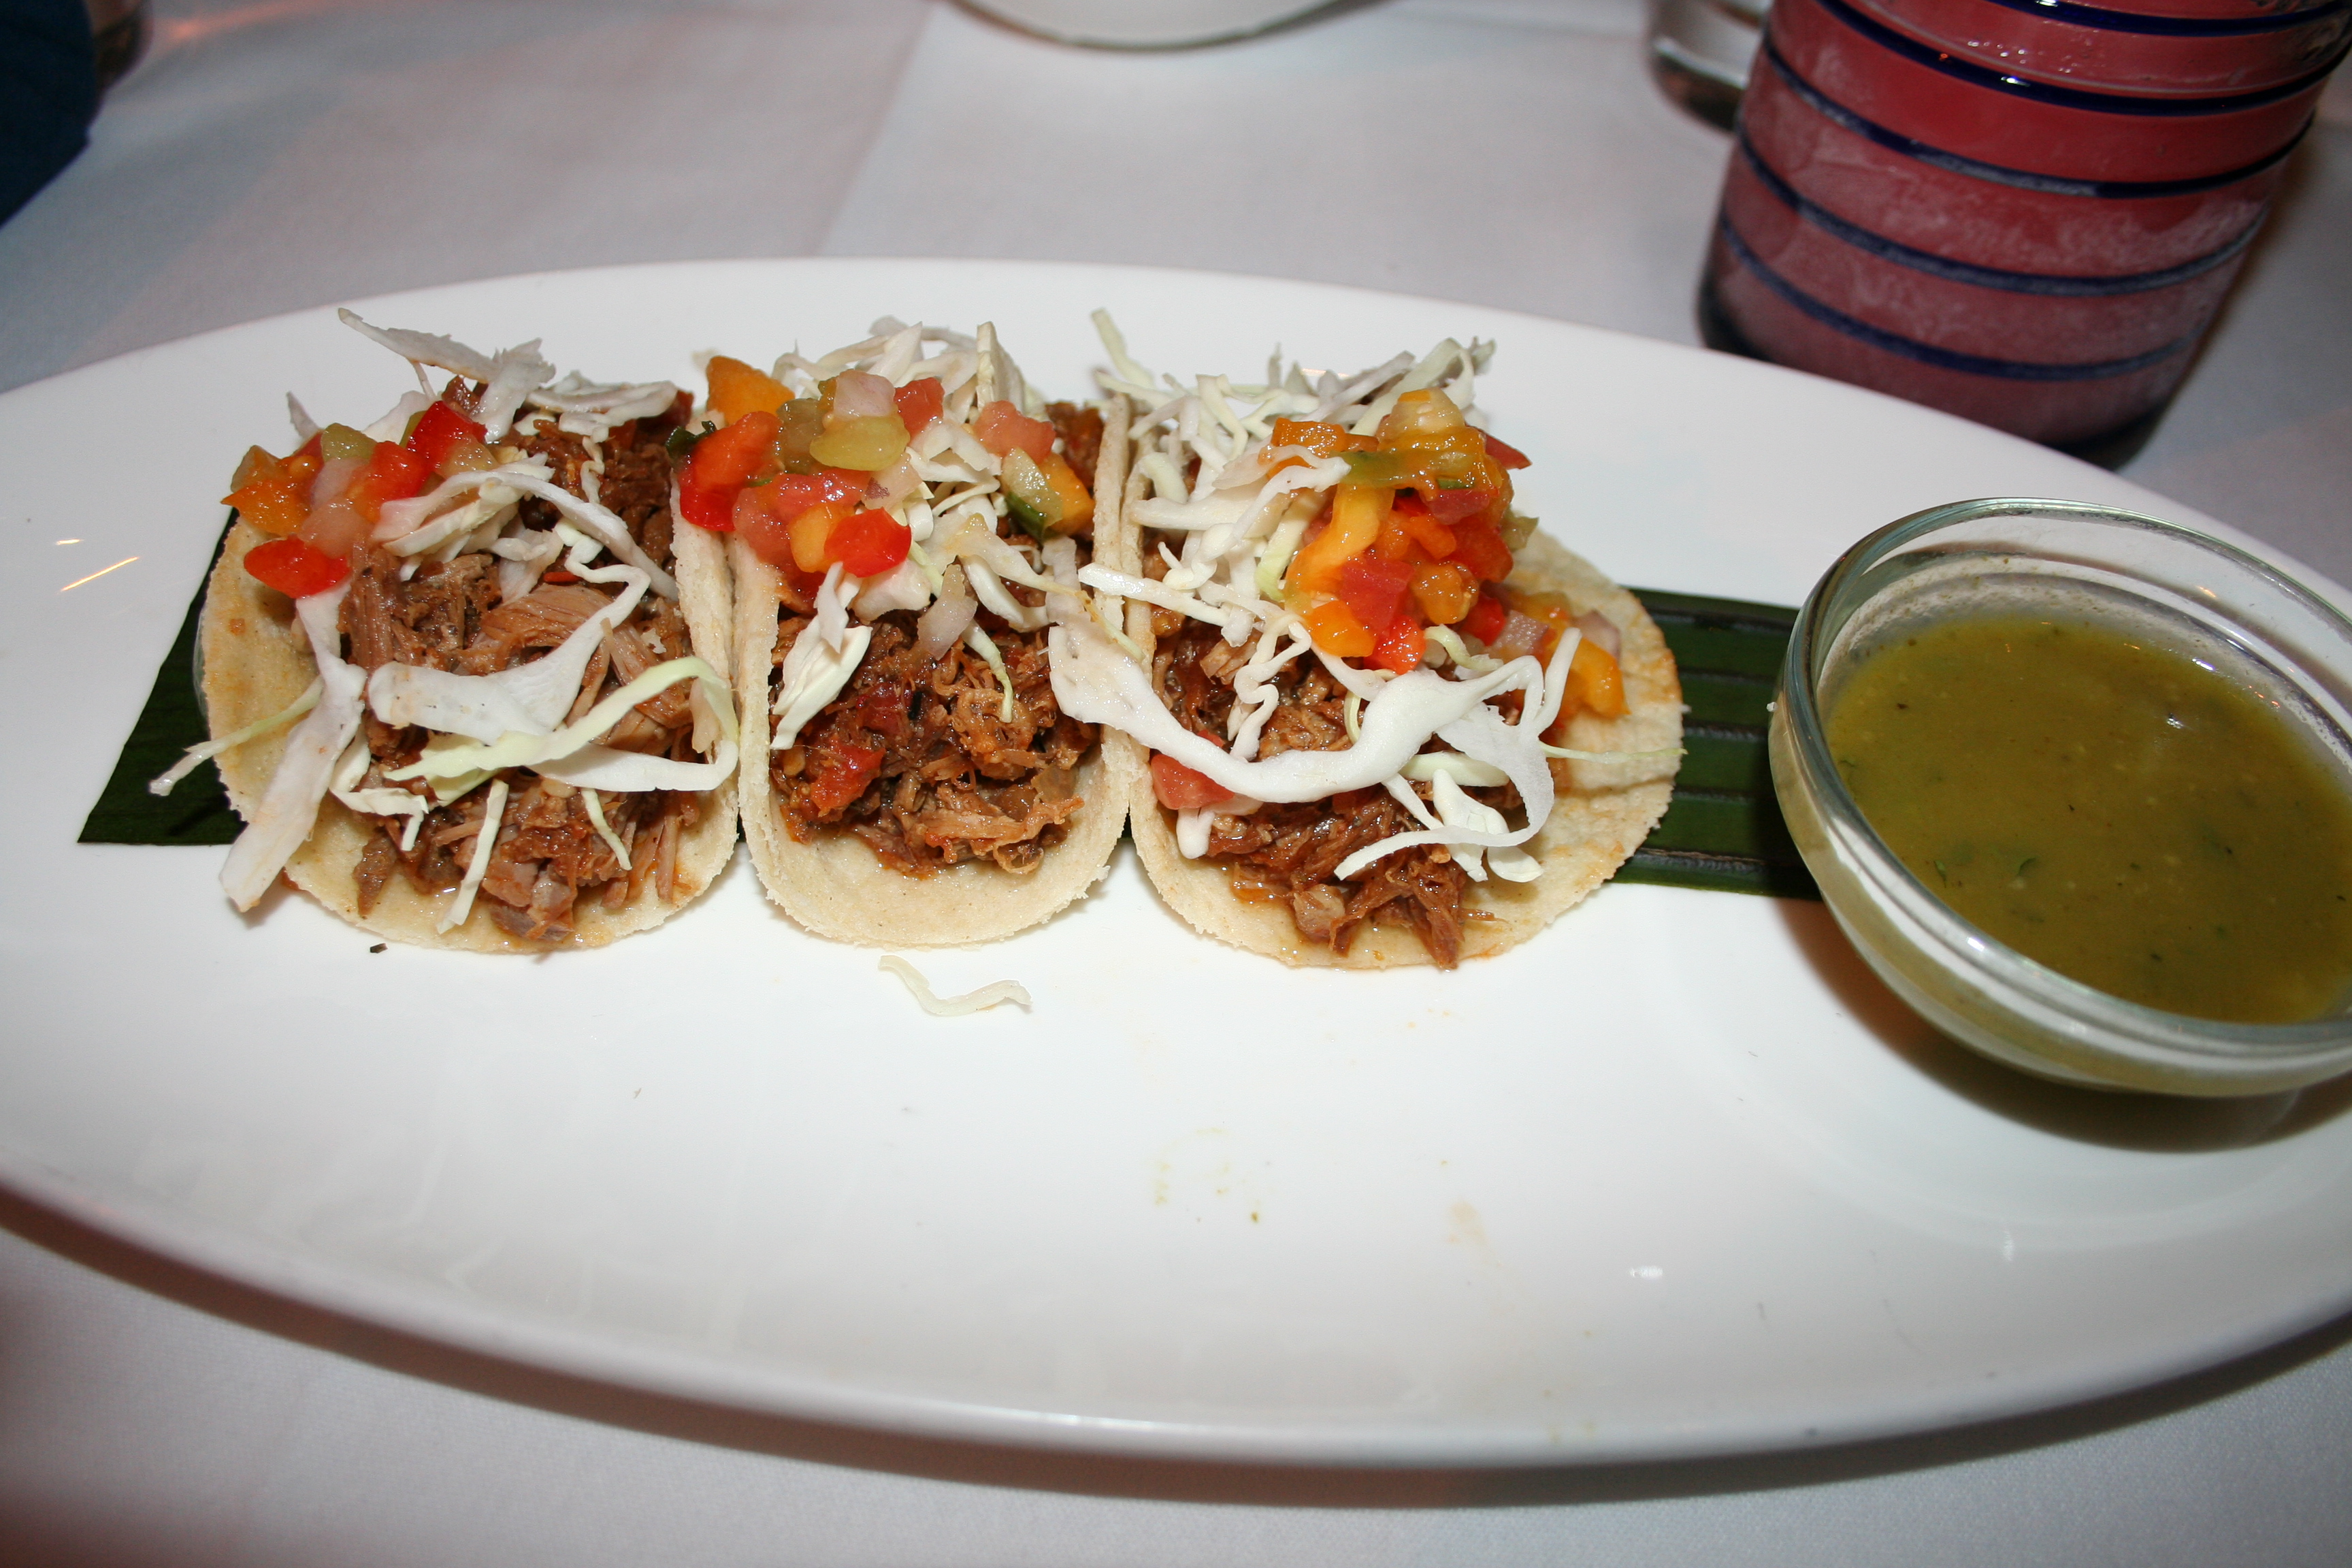 Soft tortillas filled with shredded pork. (Photo: Mark Heckathorn/DC on Heels)